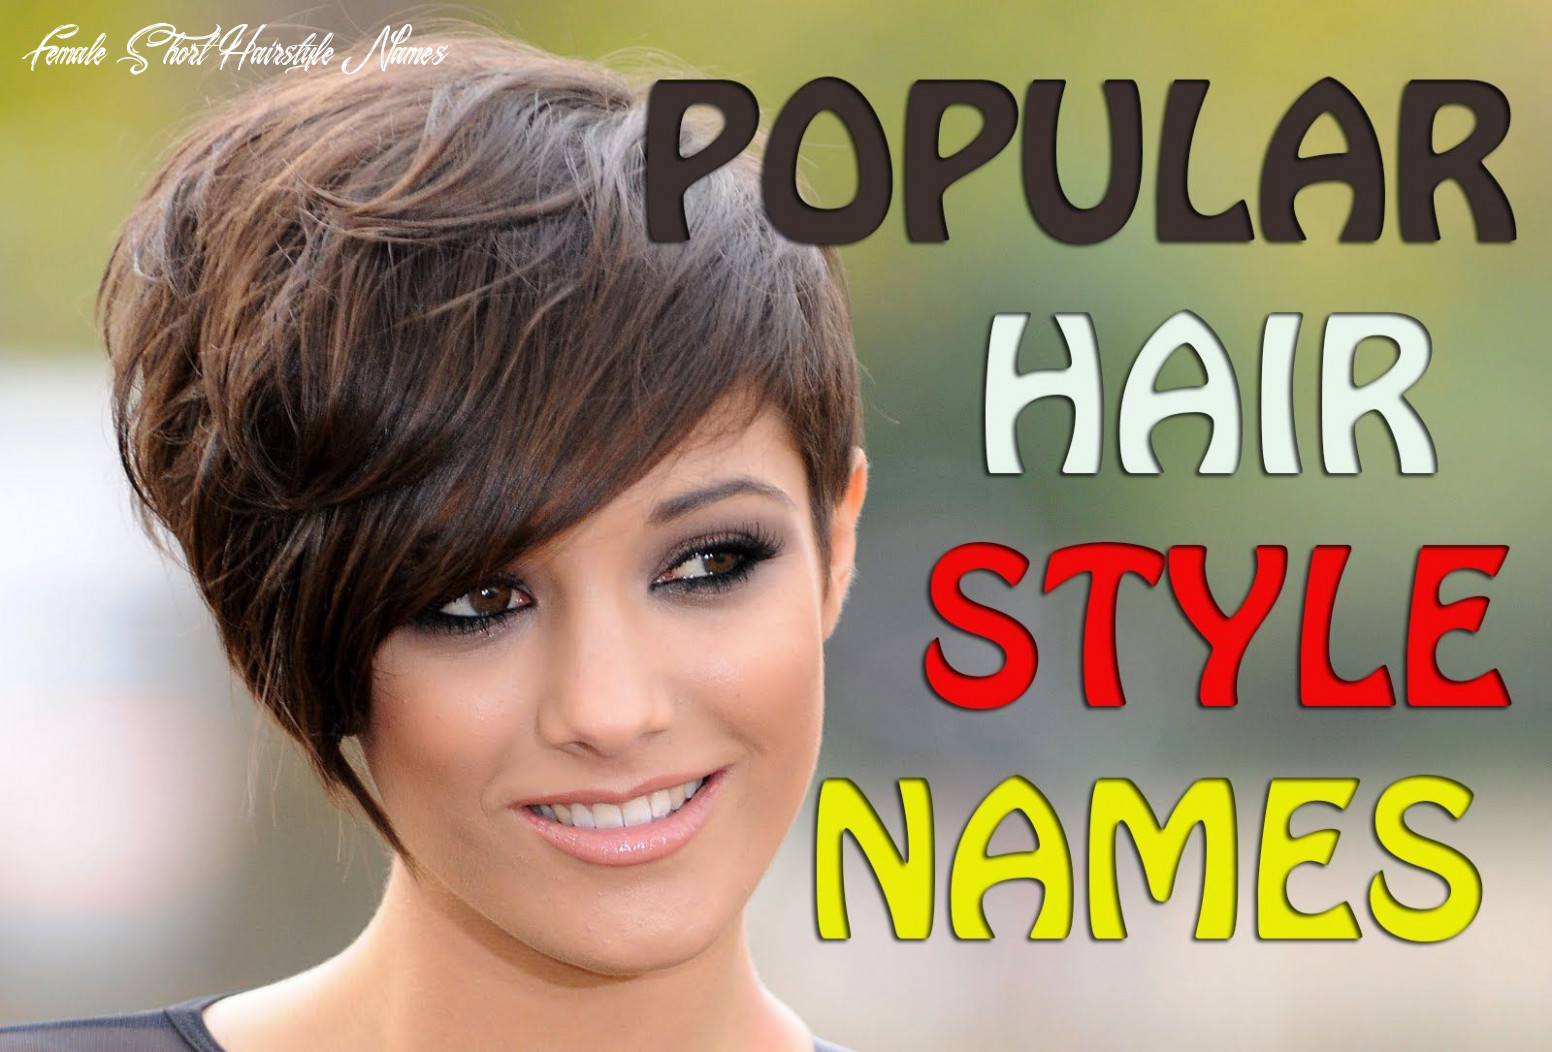 Popular hairstyle names best hairstyle ideals for women